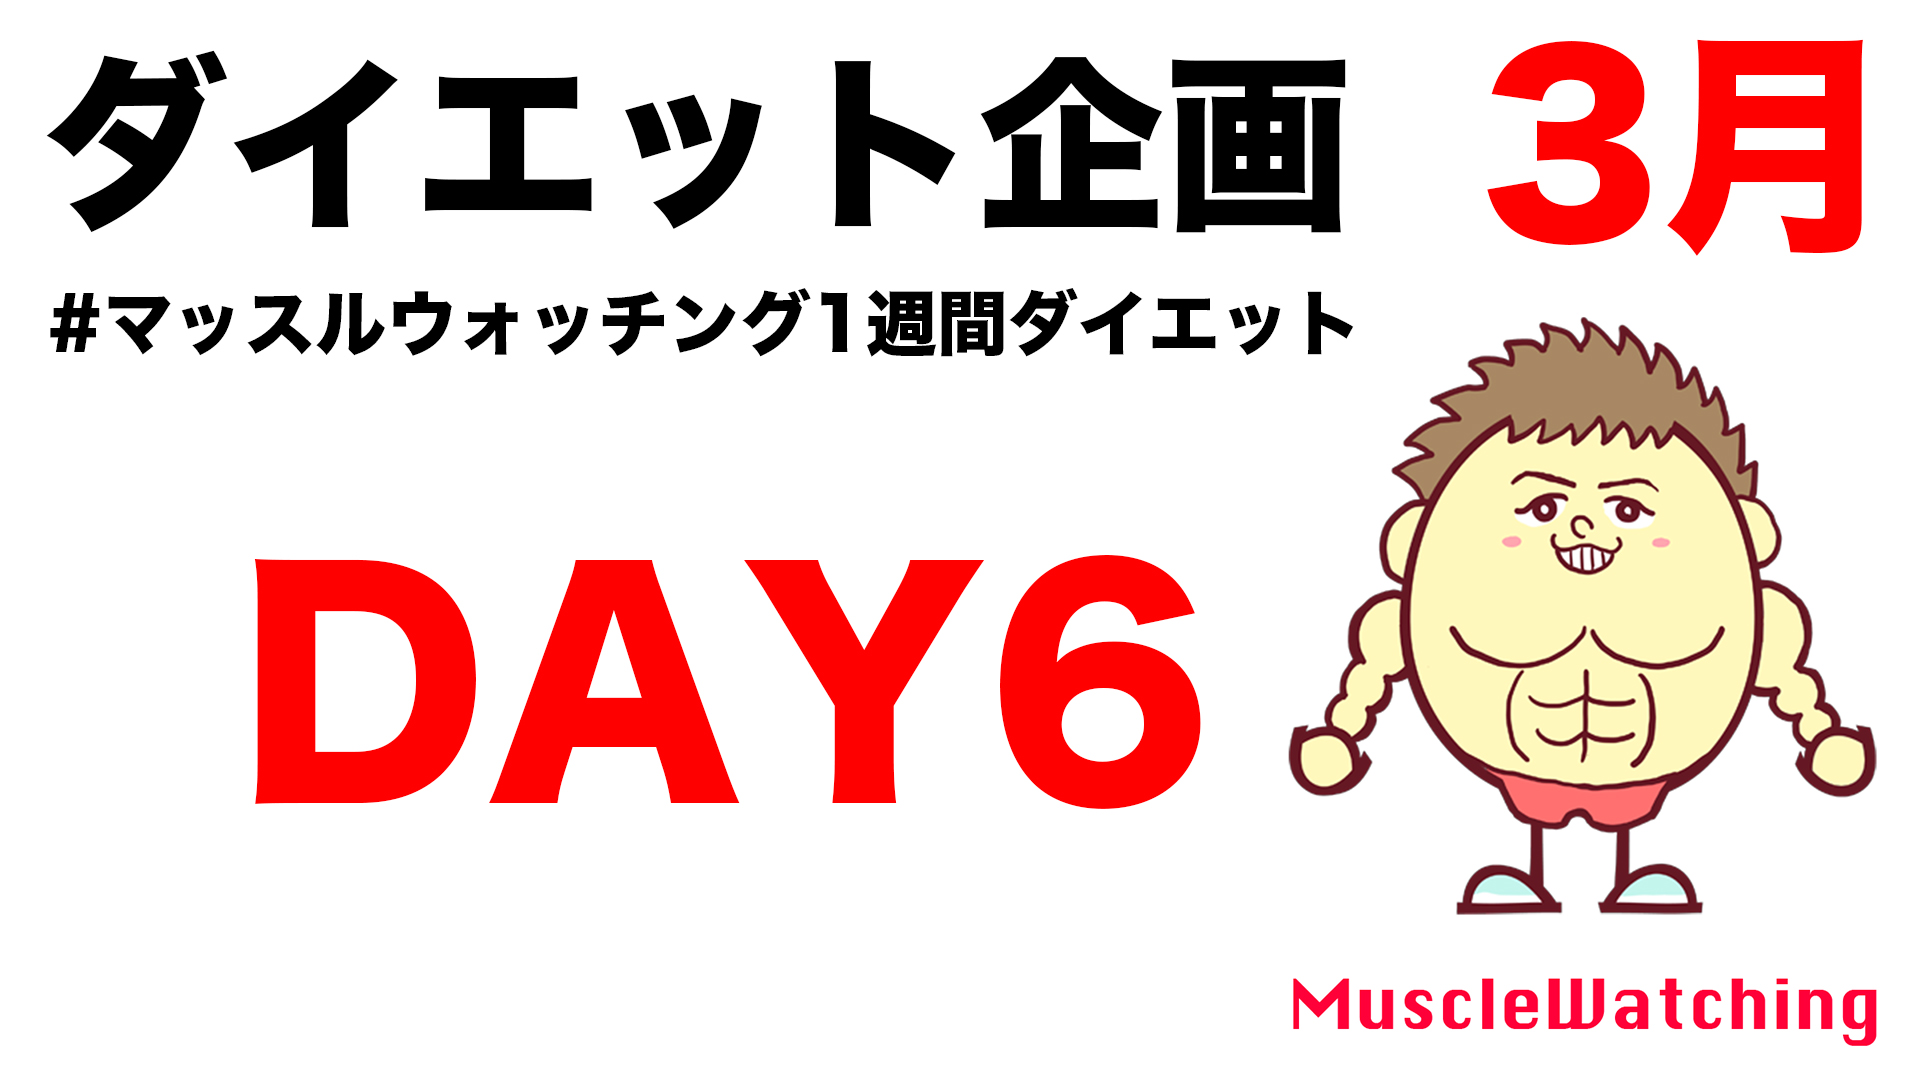 【DAY6】女性限定1週間ダイエット企画 3月| Muscle Watching